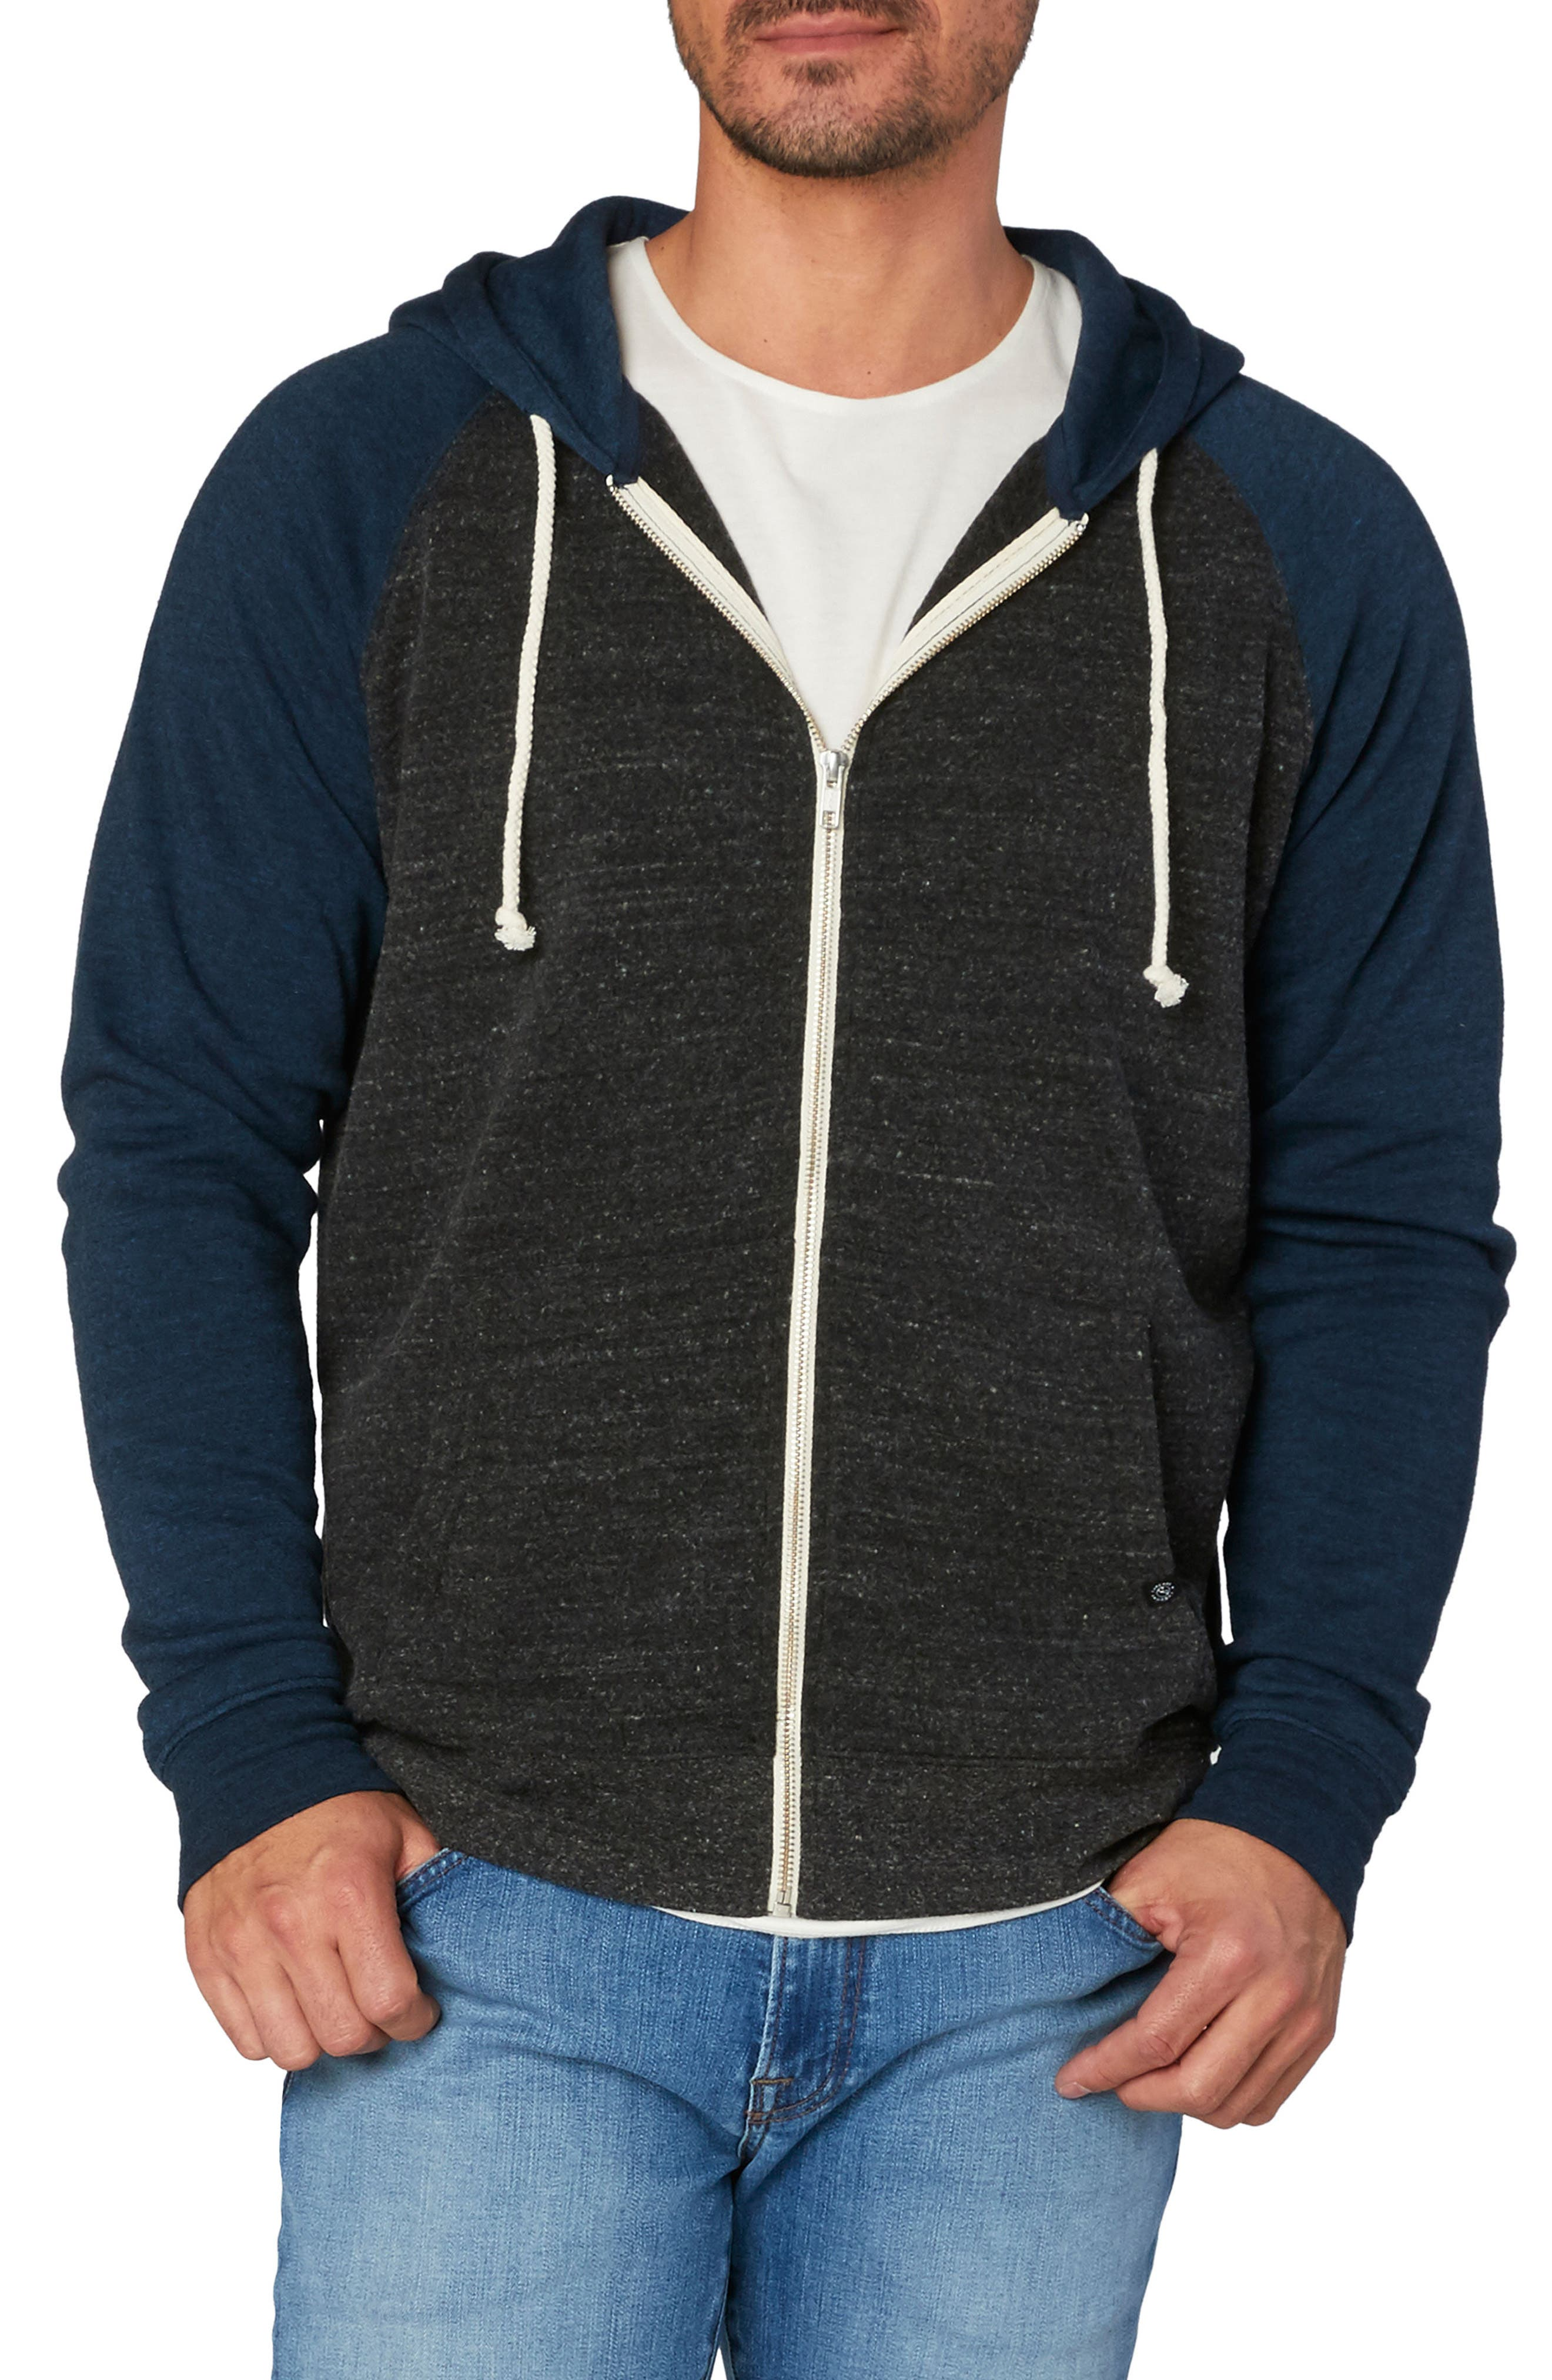 Threads for Thought Raglan Hoodie,                             Main thumbnail 1, color,                             001